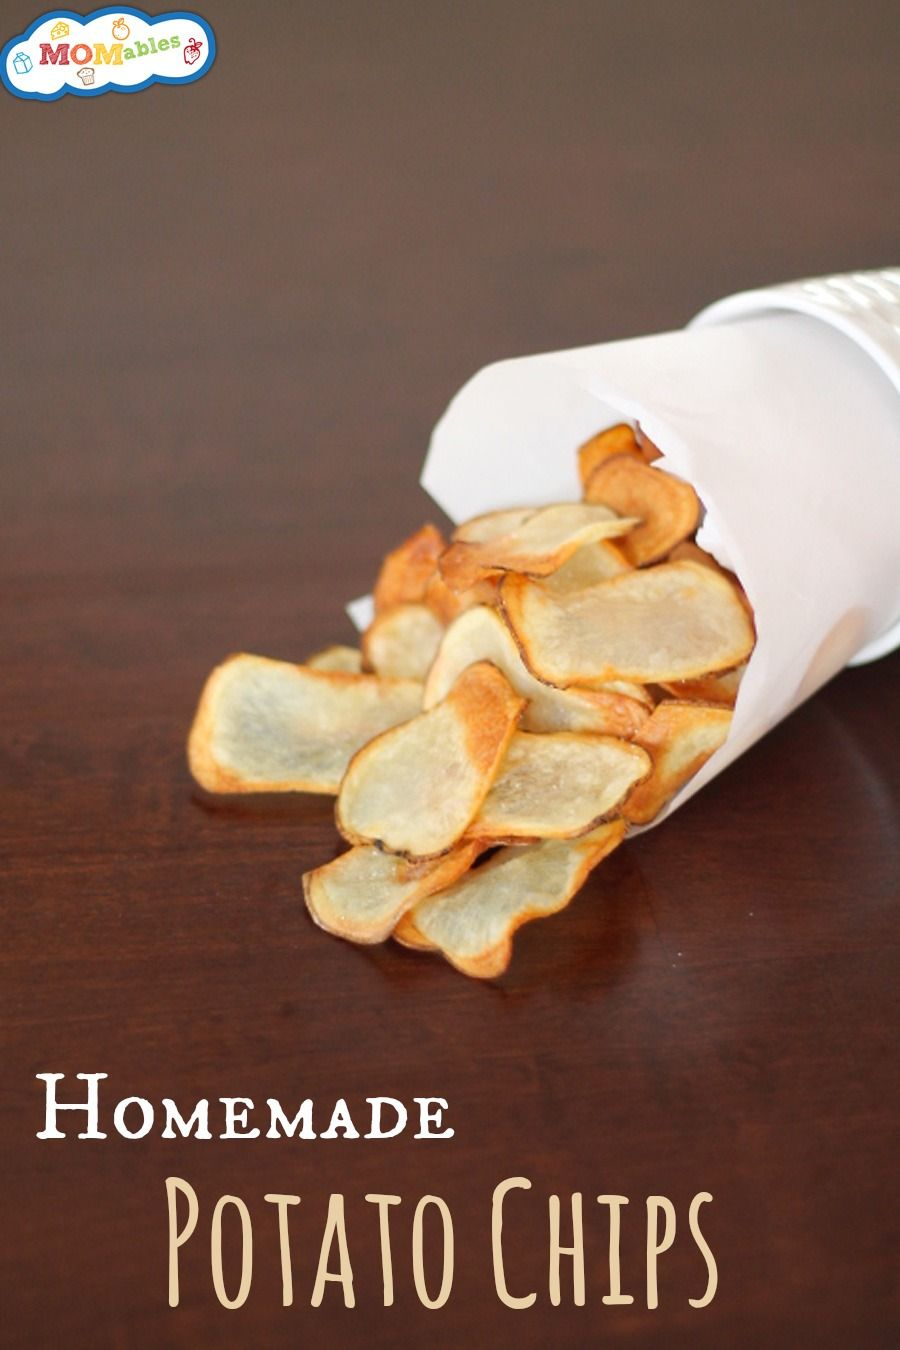 Have you ever seen any post about potato chips?